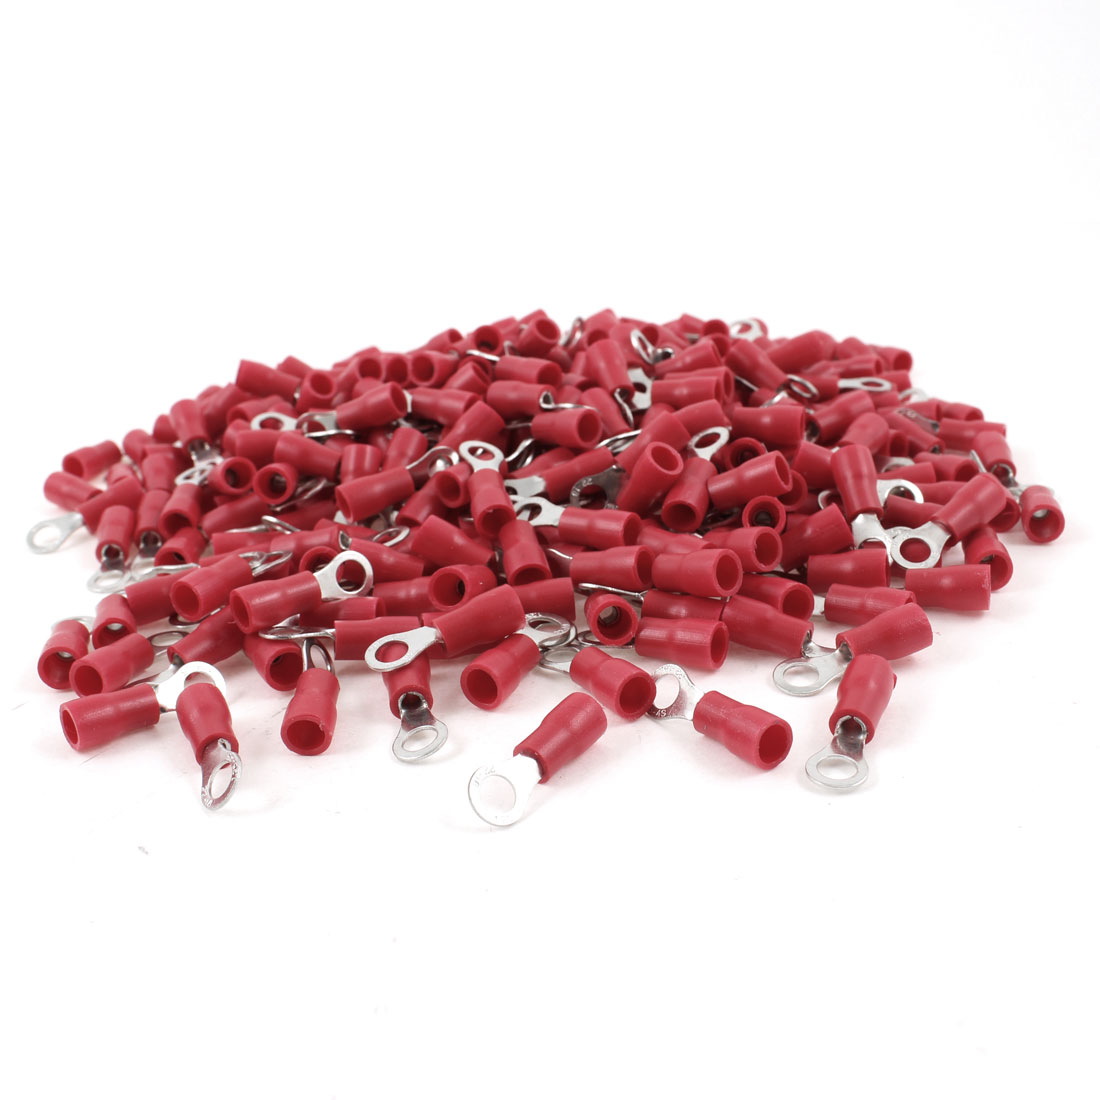 1000Pcs Red Pre Insulated Ring Terminal RVS1.25-4 for #8 Bolt AWG 22-16 Wire